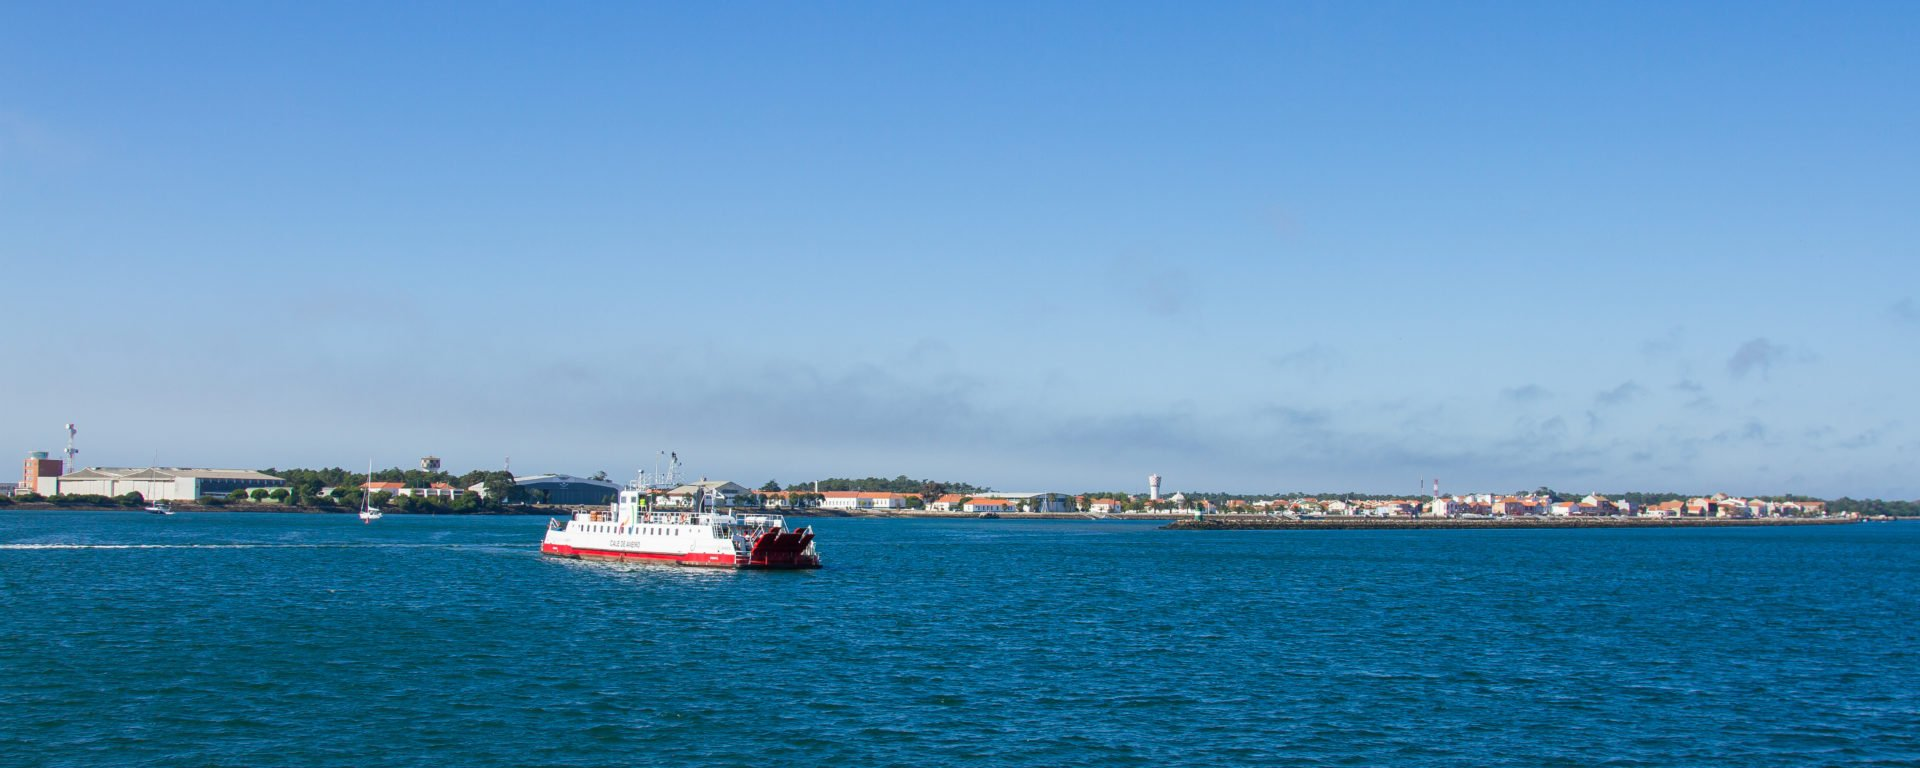 transdev-portugal-to-integrate-the-first-100-portuguese-electric-ferryboat-in-urban-network